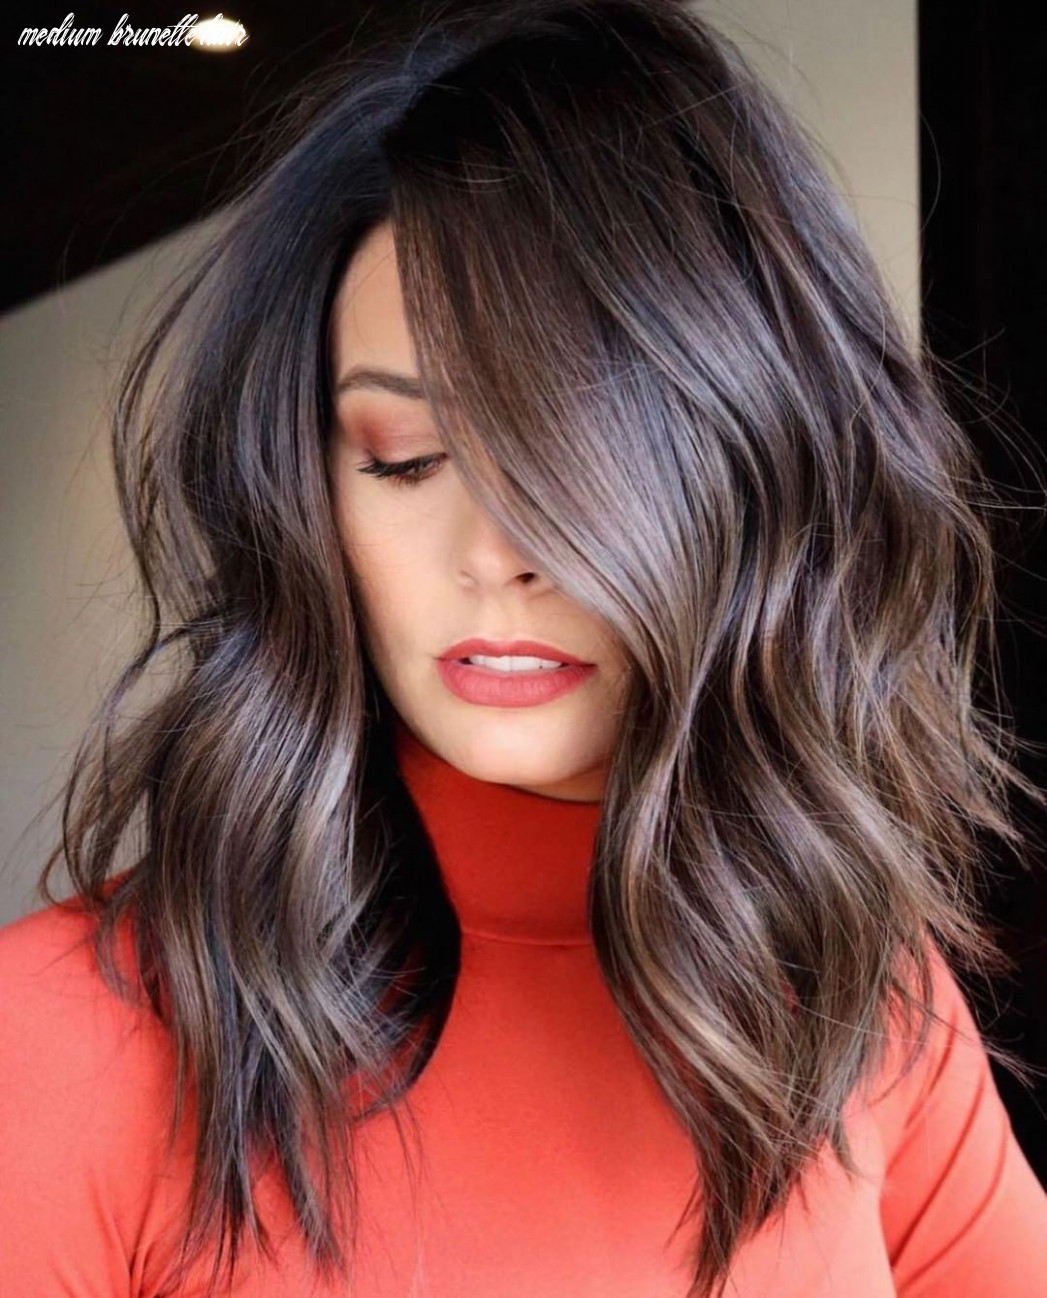 Spring 10 hair trends: the 10 prettiest looks to copy in 10